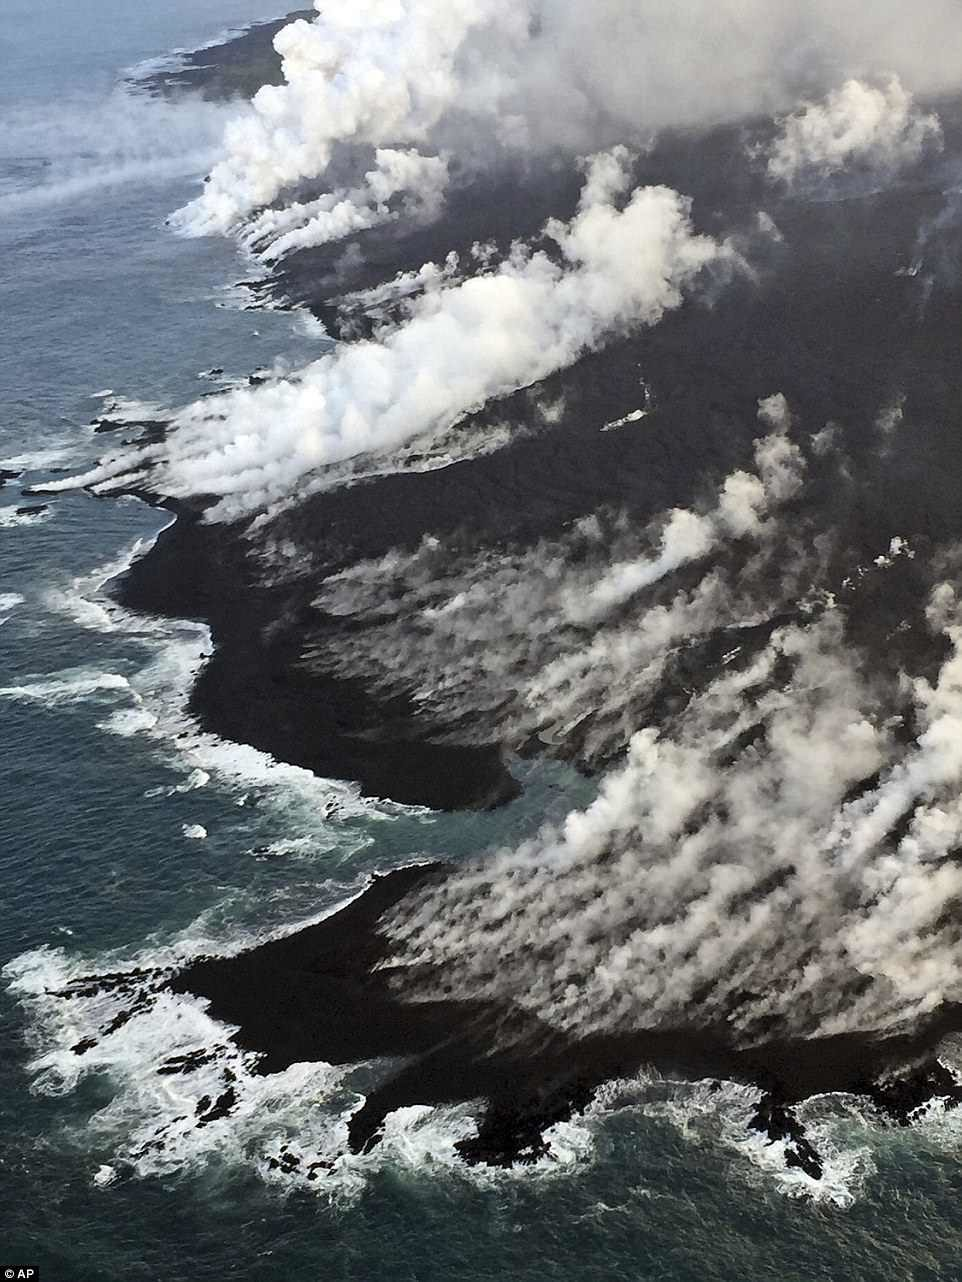 1: Kilauea volcano, Hawaii. Threat Score: 263. Aviation Threat: 48 recommend